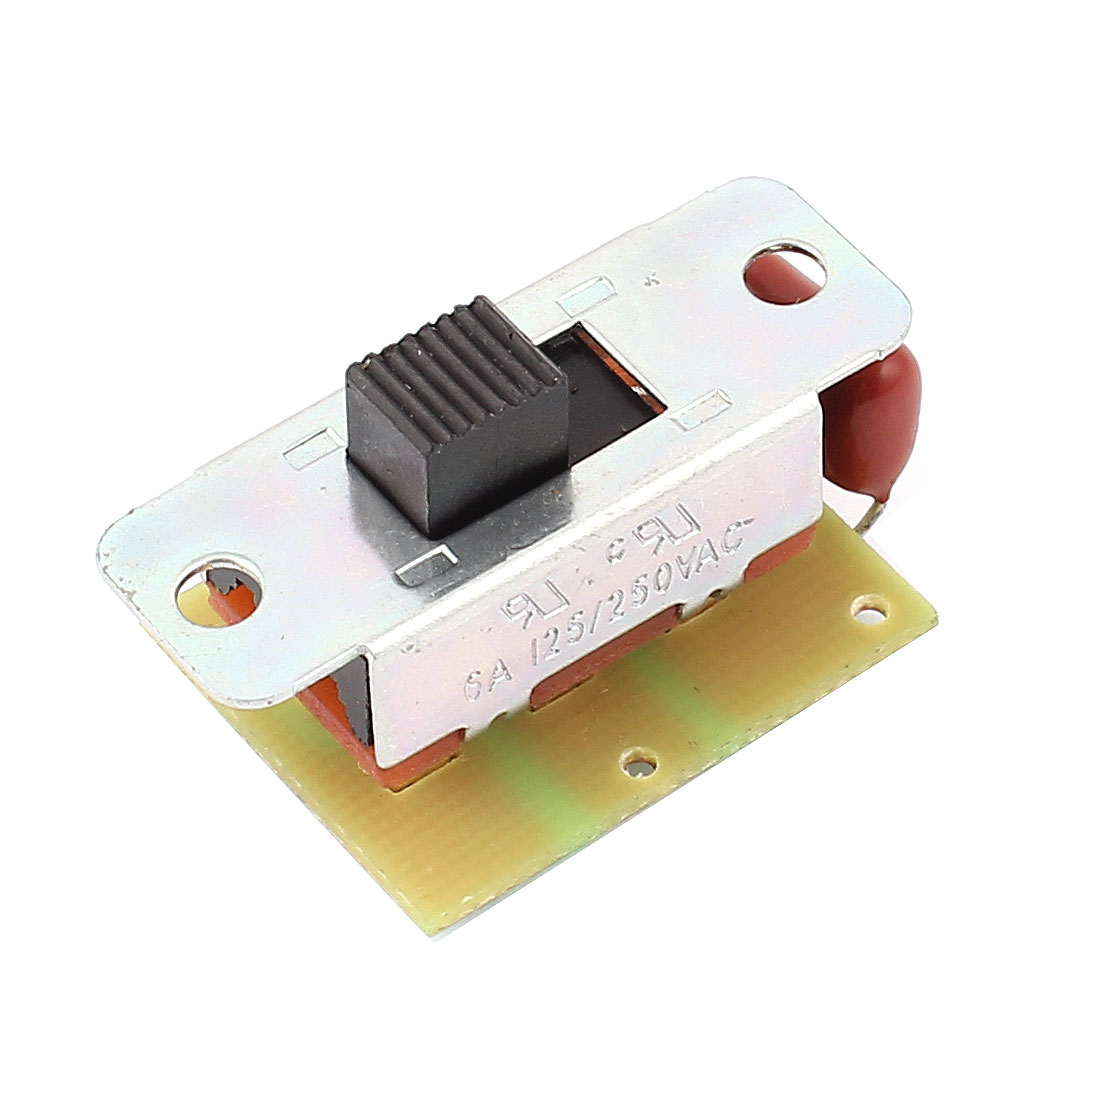 AC 250V 125V 6A DPDT Miniature Power Slide Switch for Electric Screwdriver CW/CCW Rotary